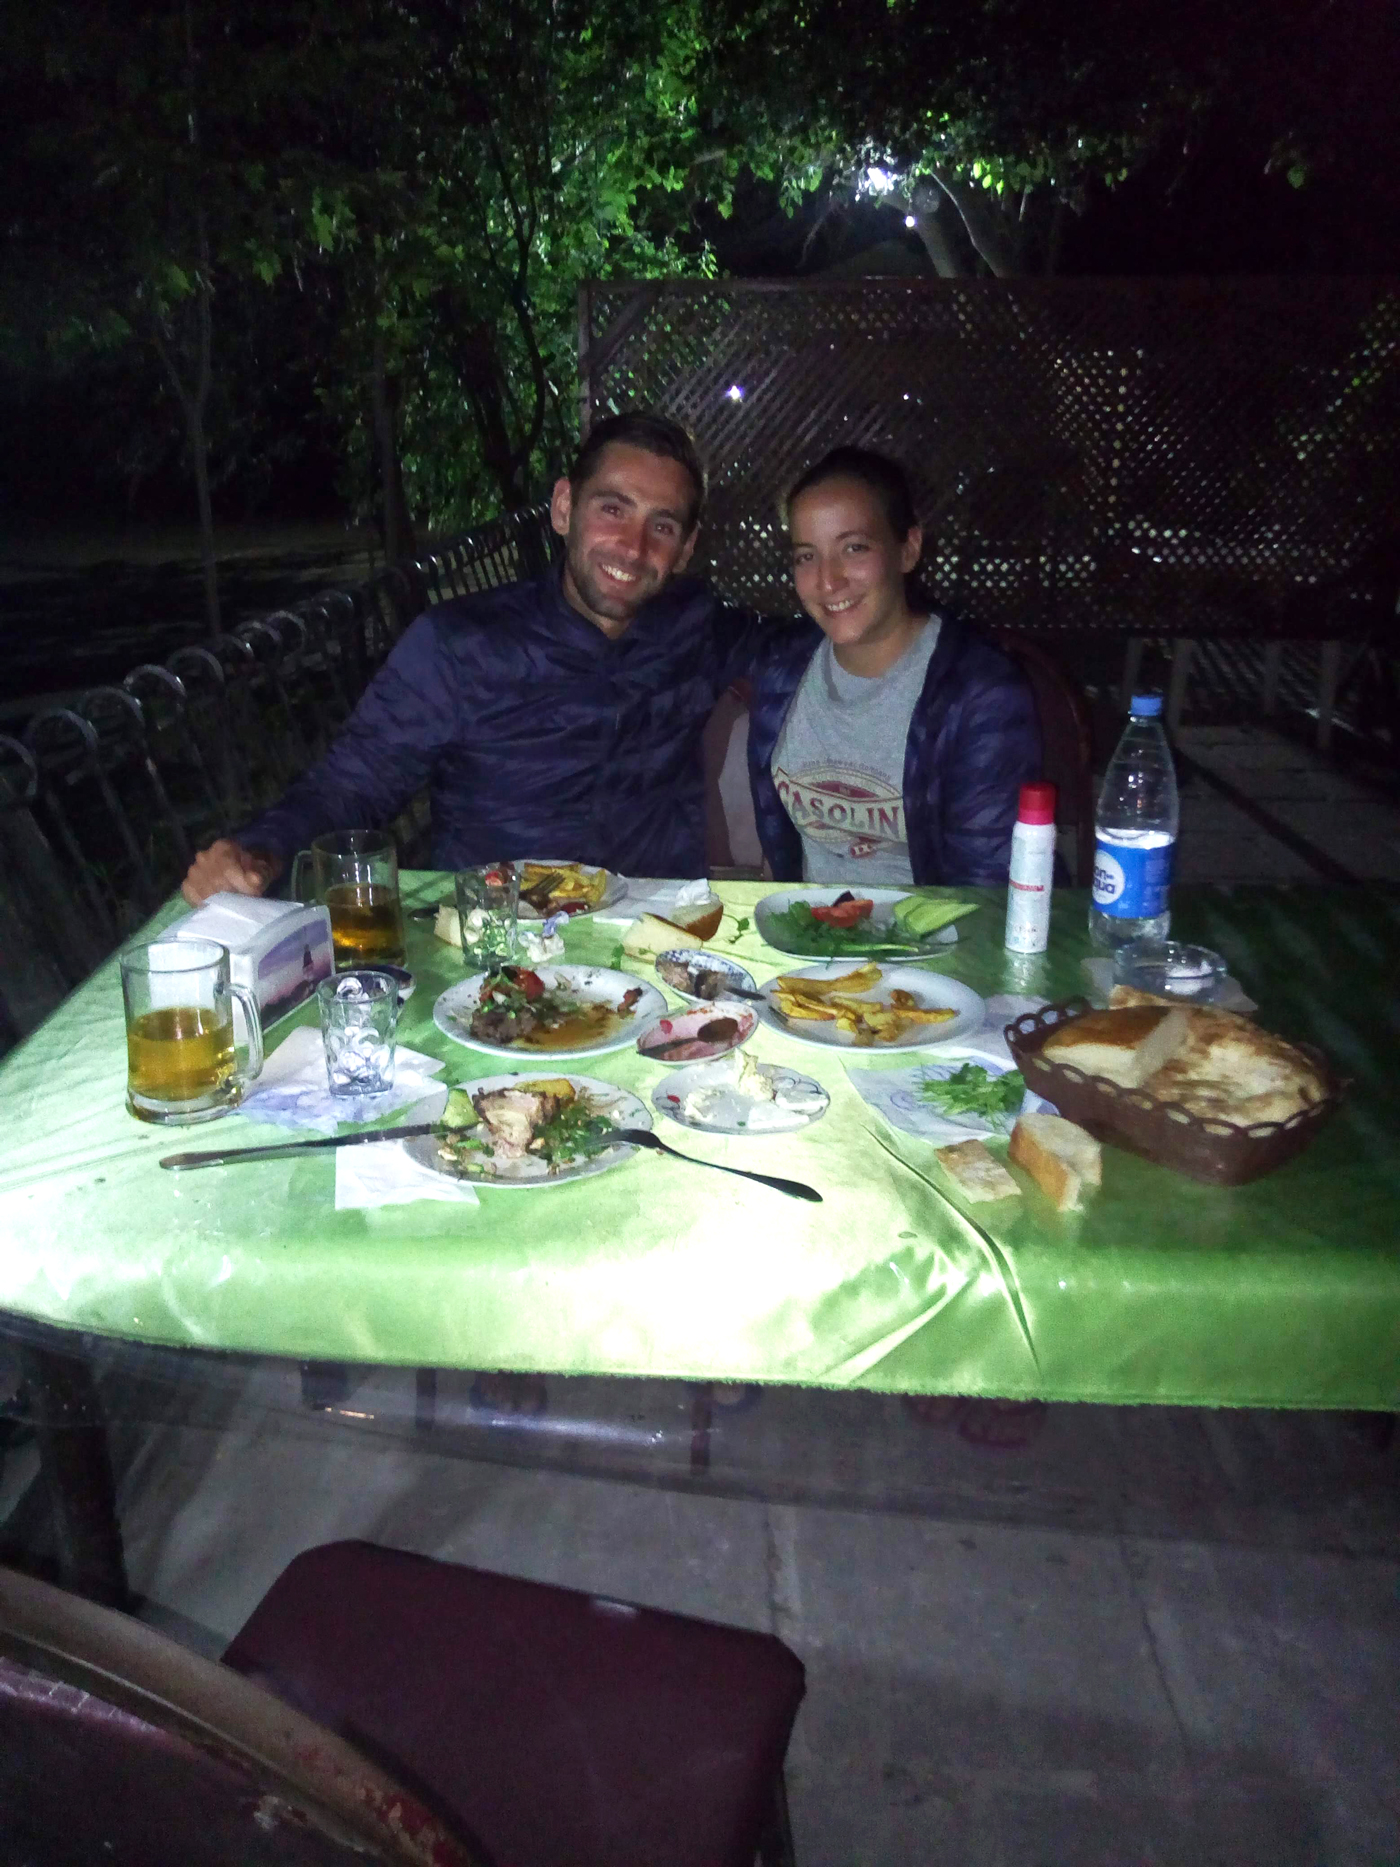 Cycling, Azerbaijan Cycling, crossing the Caucasus region by bicycle, open air restaurant in Salyan for Arthur's 30th birthday. Cycling travel, biketouring, cycling Caucasus, cycling Azerbaijan, outdoor restaurant in Salyan for Arthur 30th birthday.